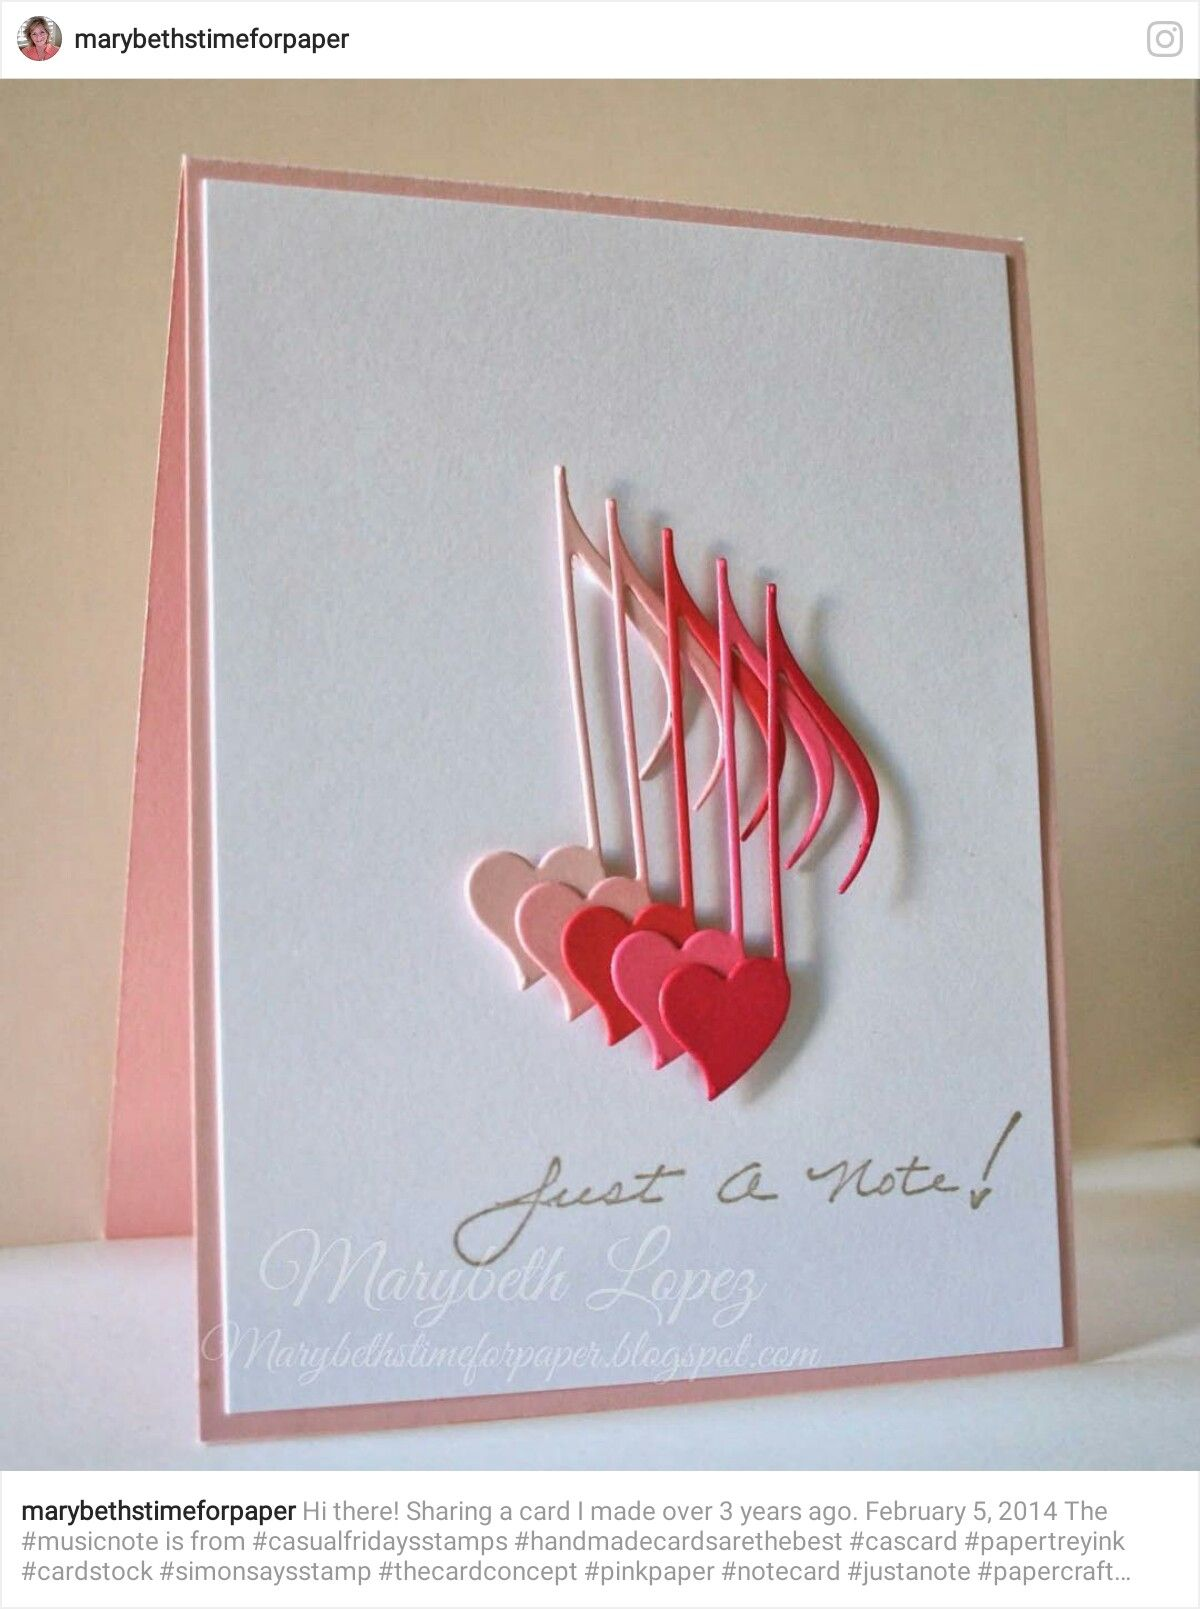 Pin by Yonnie Smith on Creative Cardmaking 1 | Pinterest | Cards ...